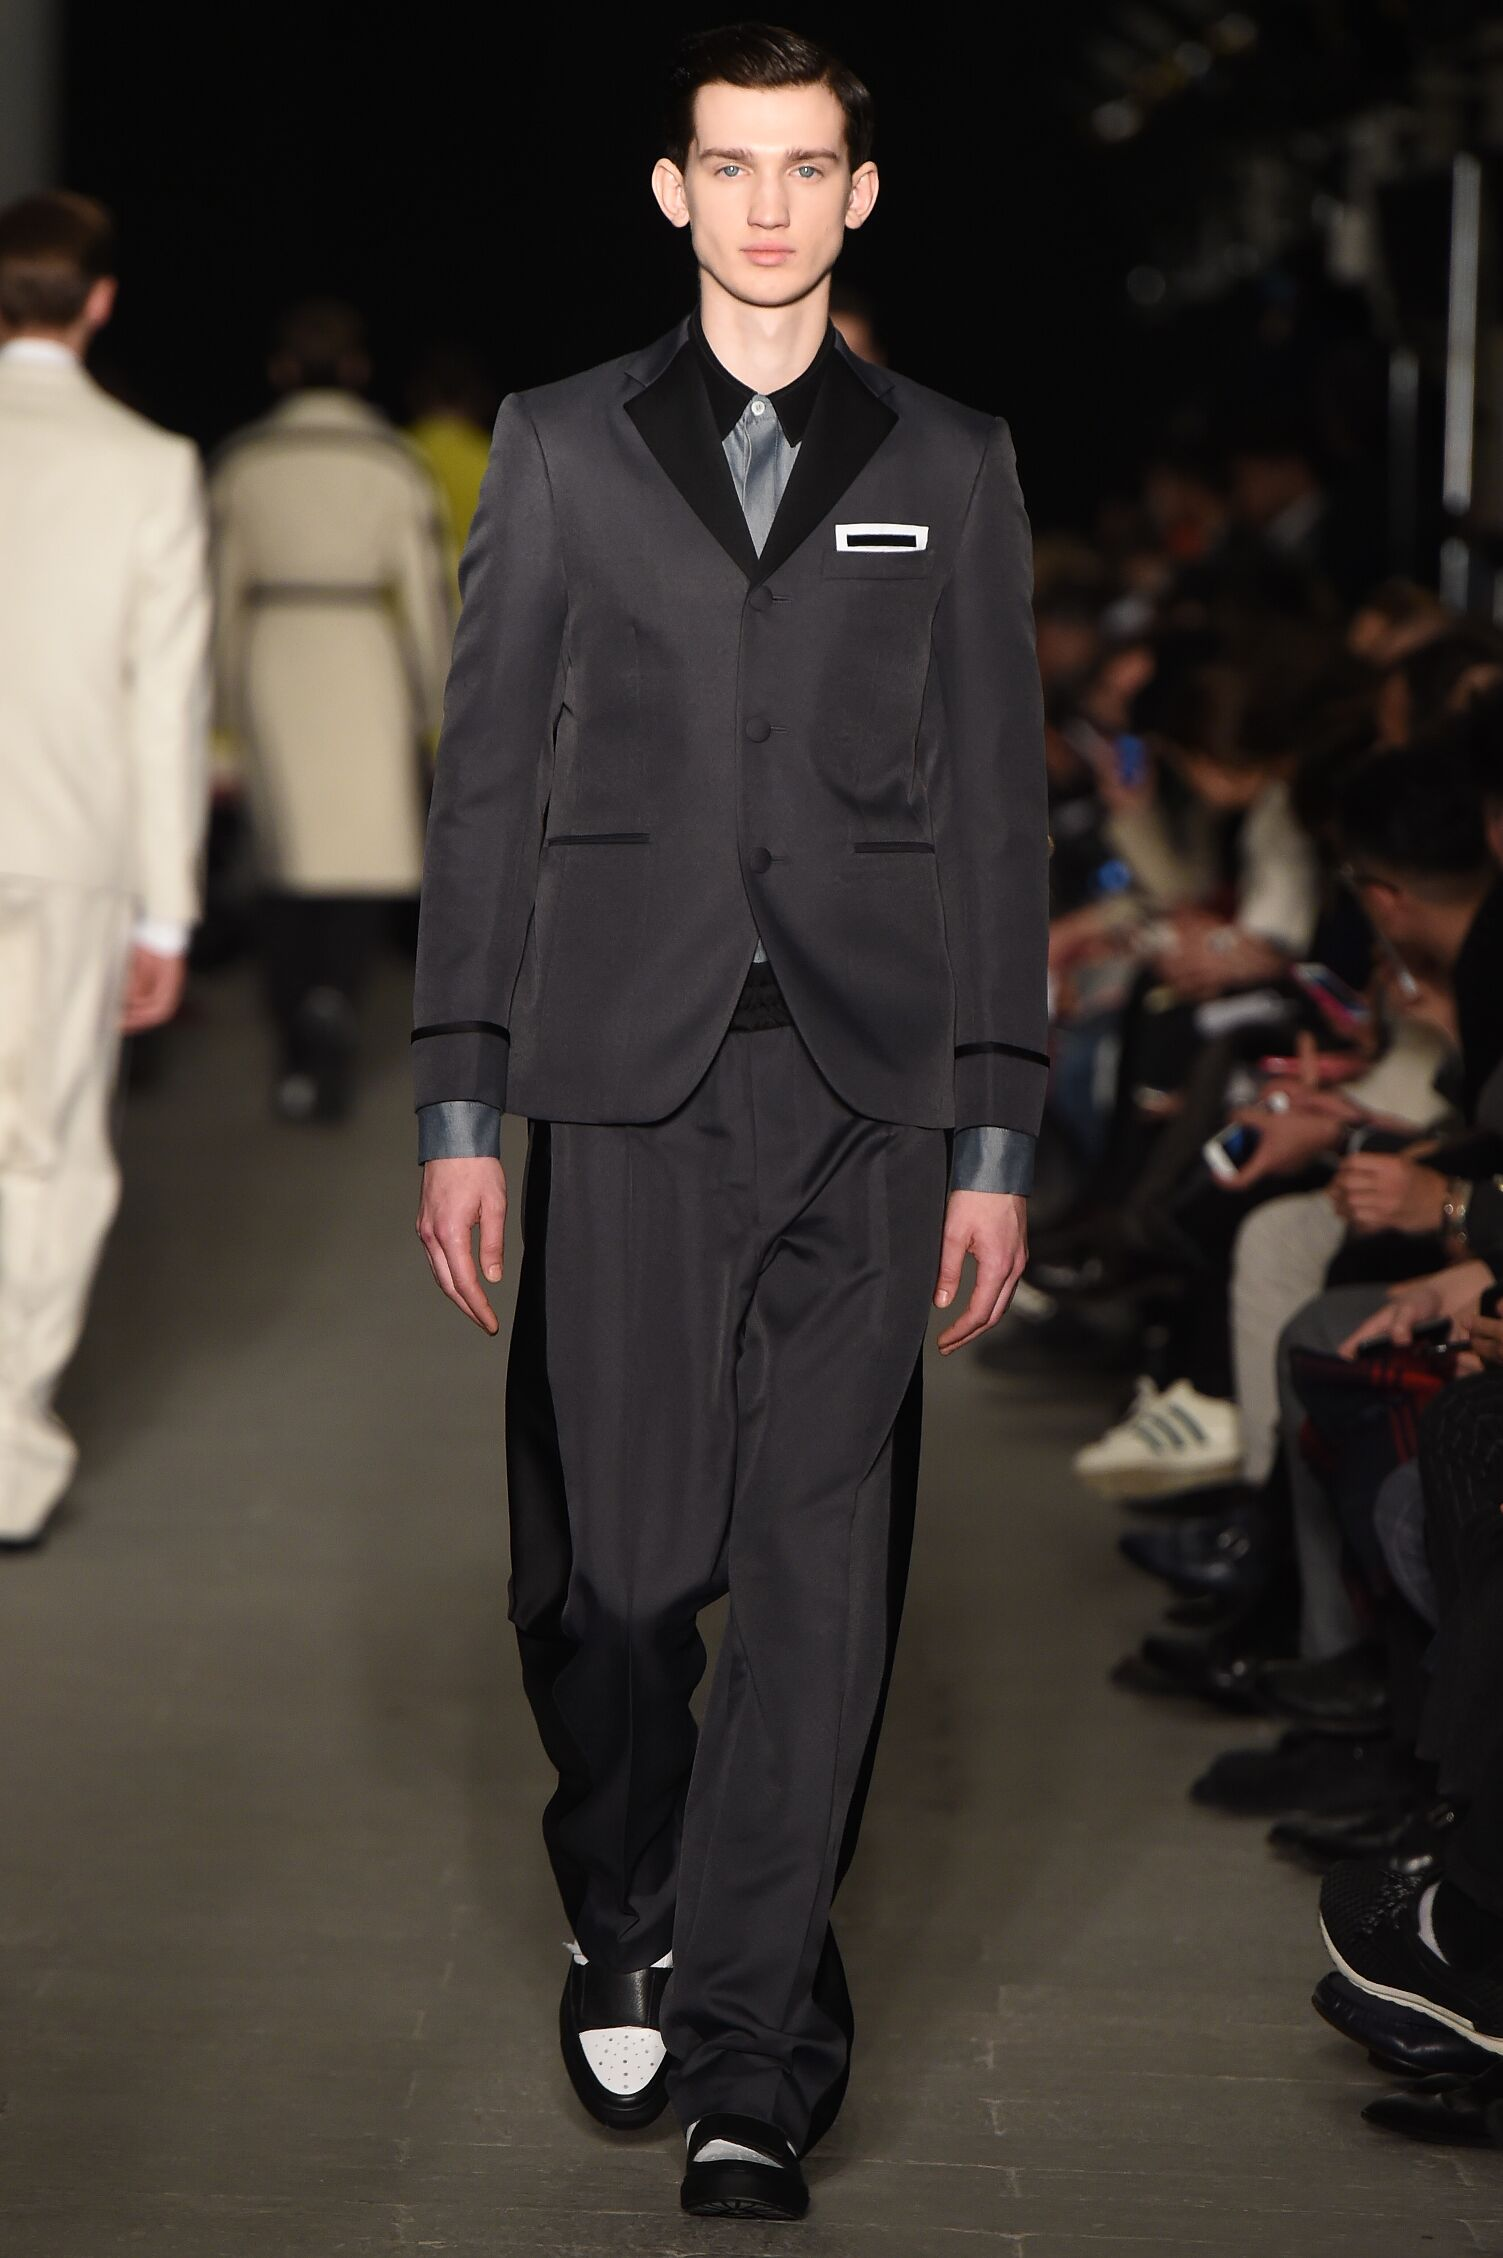 Fall Fashion Man Italian Suit Andrea Pompilio